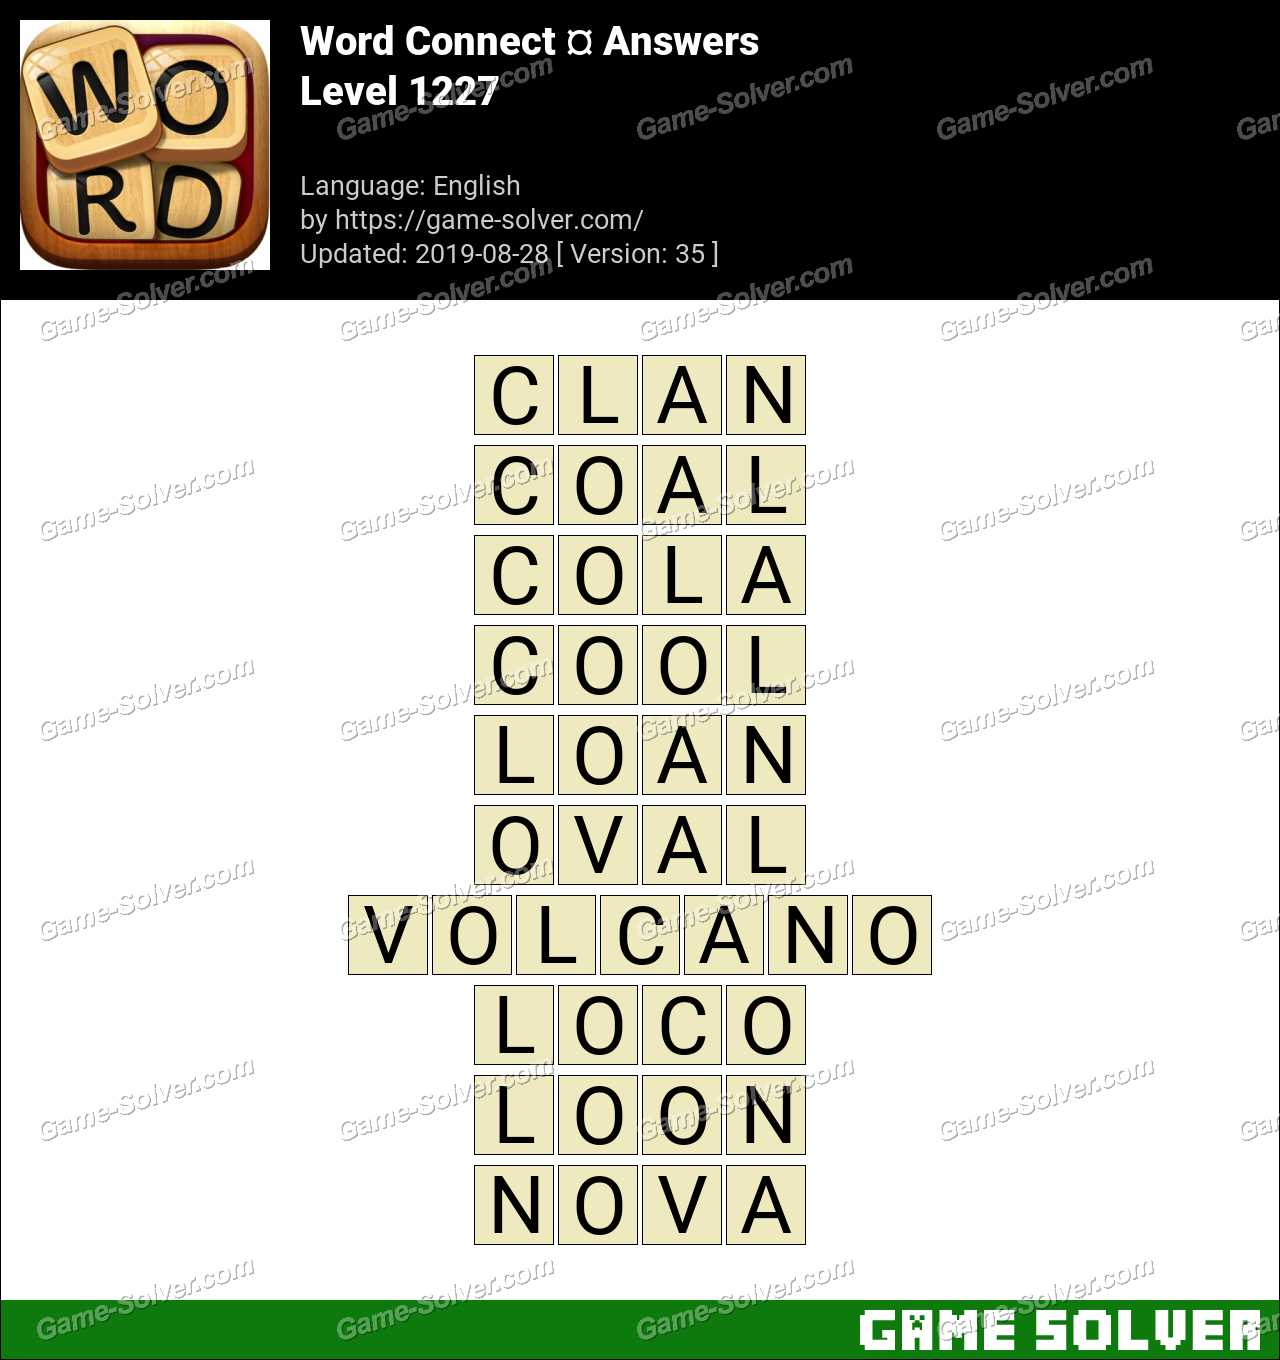 Word Connect Level 1227 Answers